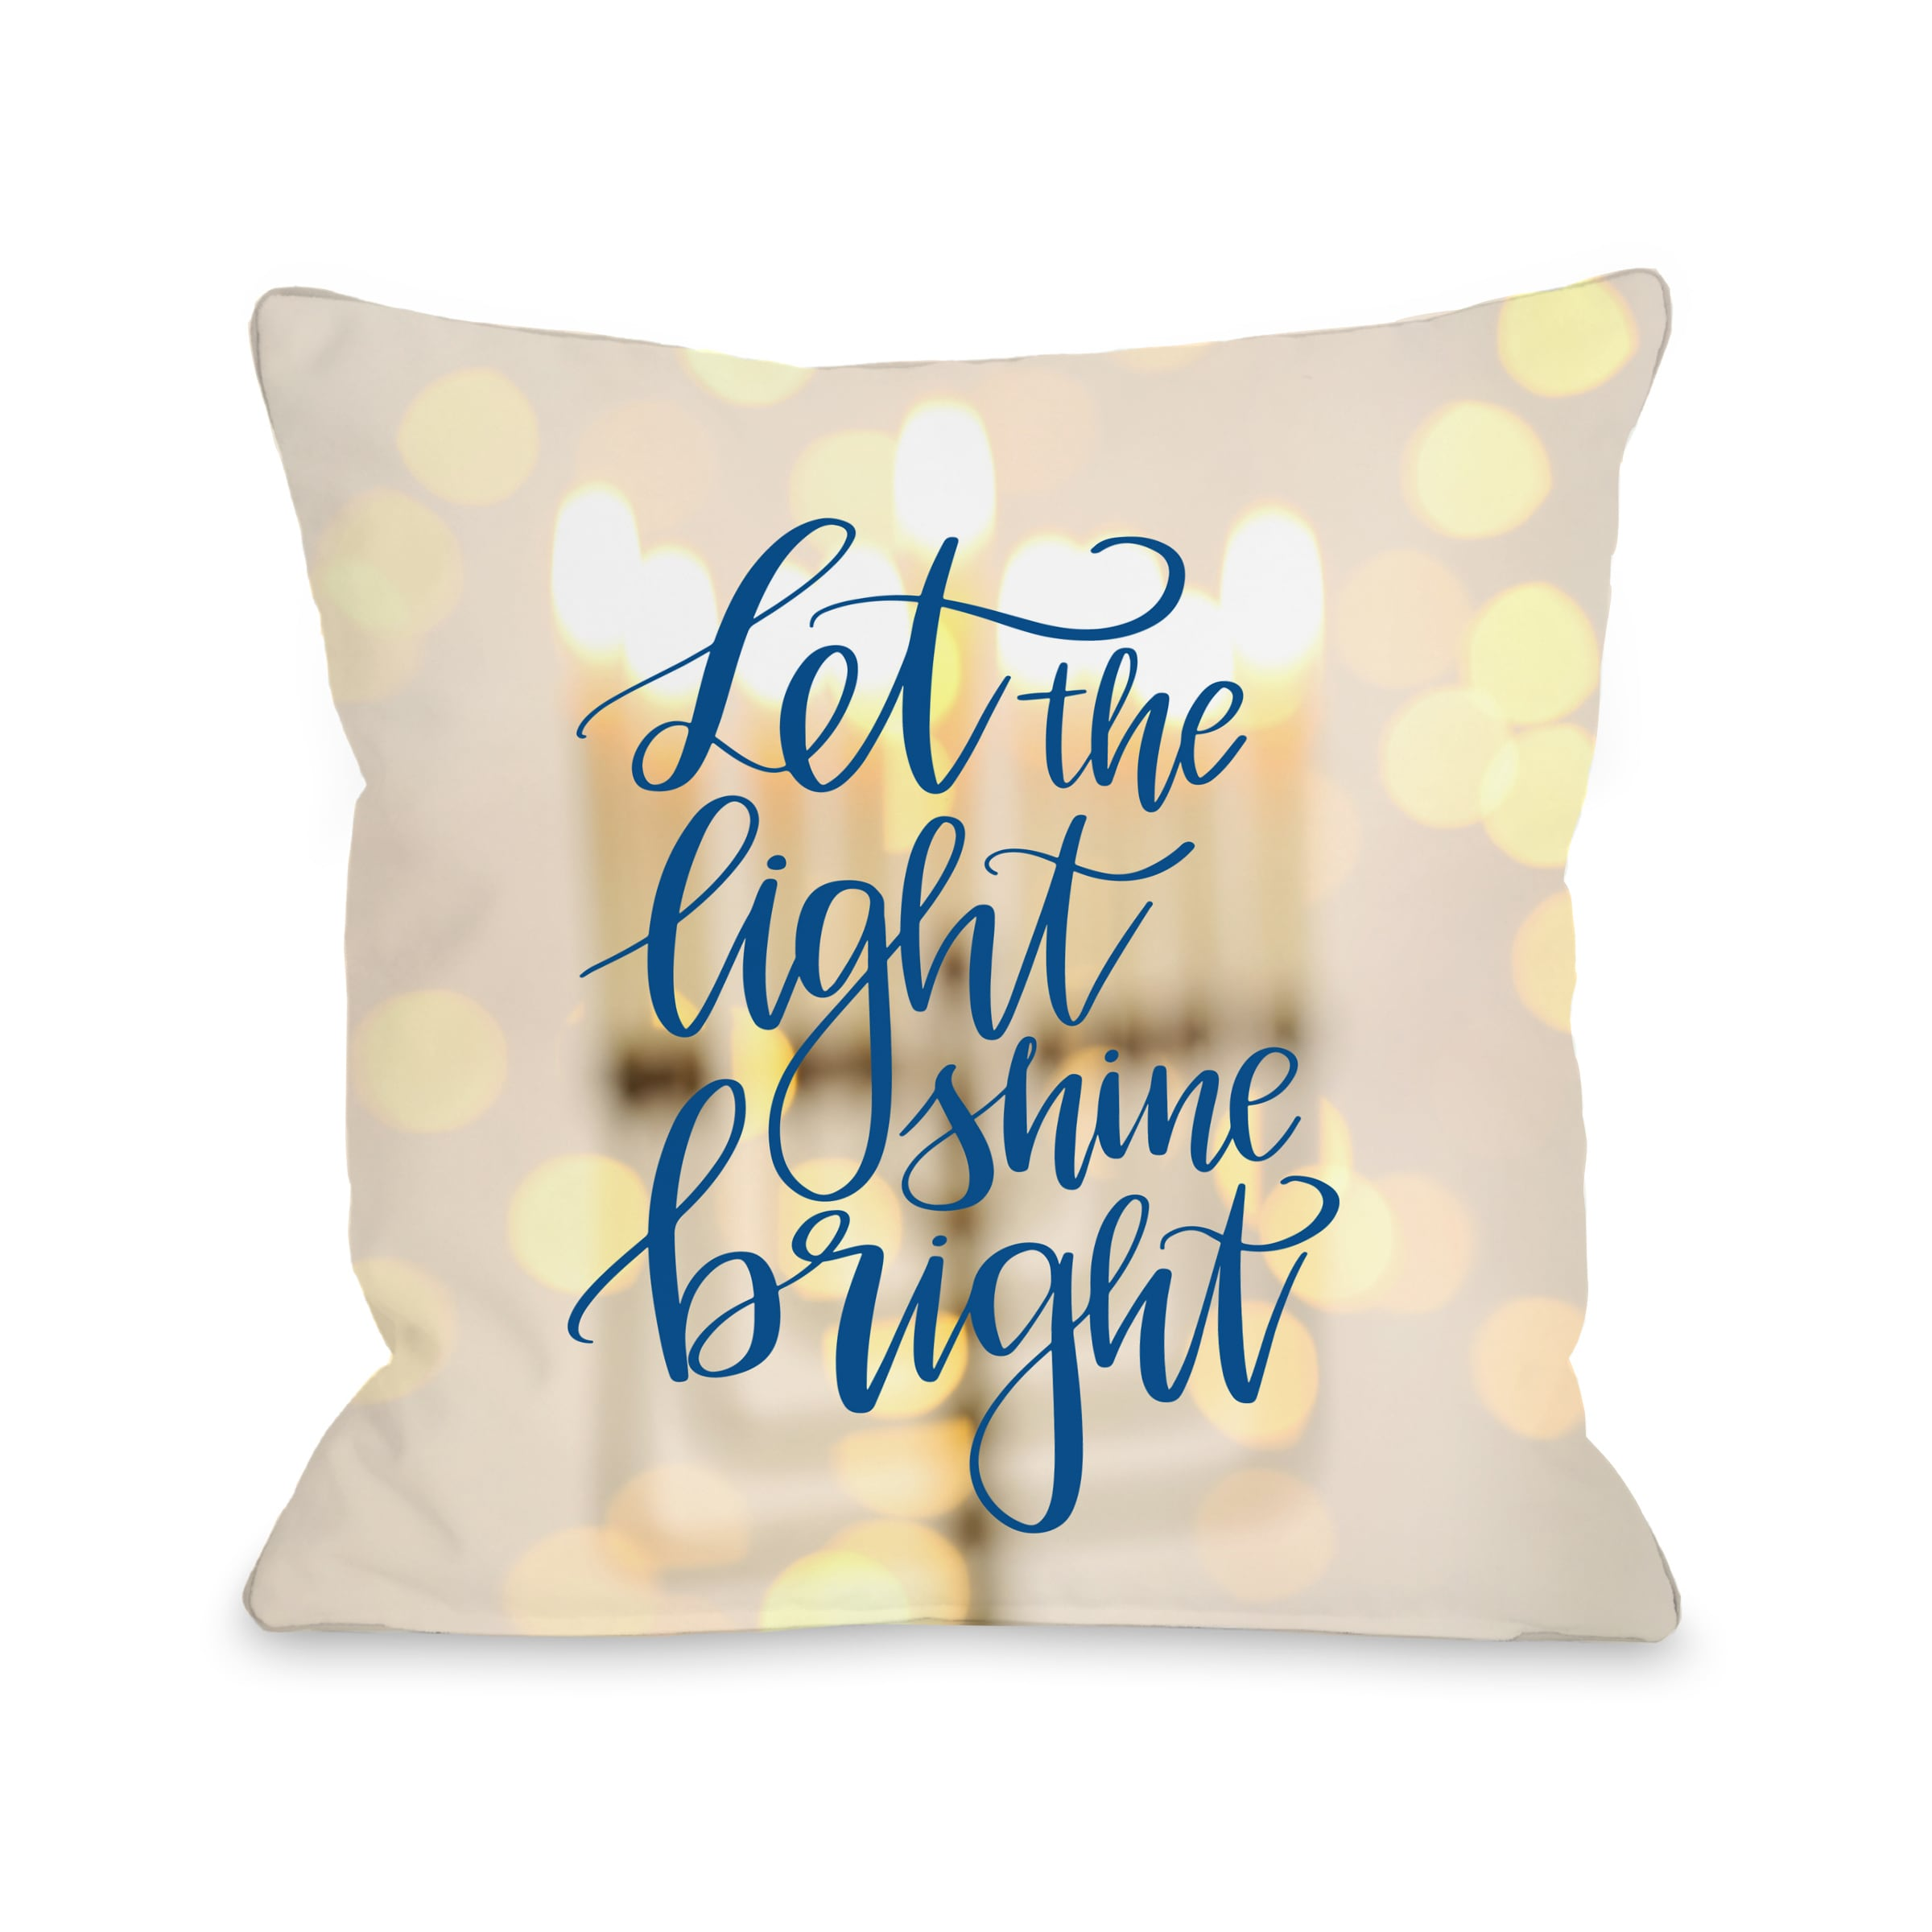 Let The Light Shine Bright Yellow Throw 16 Or 18 Inch Pillow By Obc Free Shipping On Orders Over 45 18007528